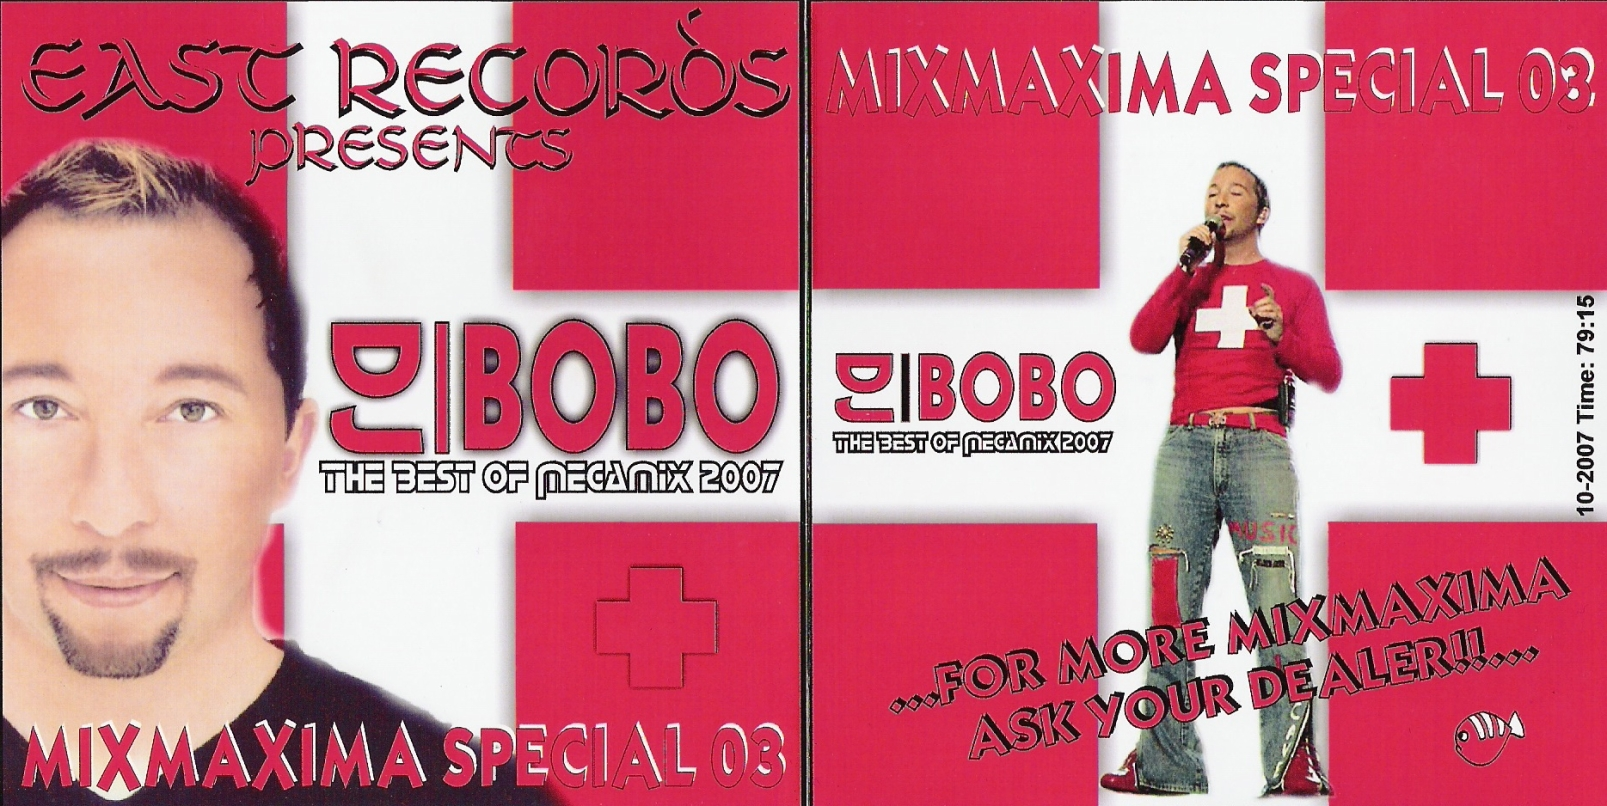 East Records Presents - Mixmaxima Special Dj Bobo 03